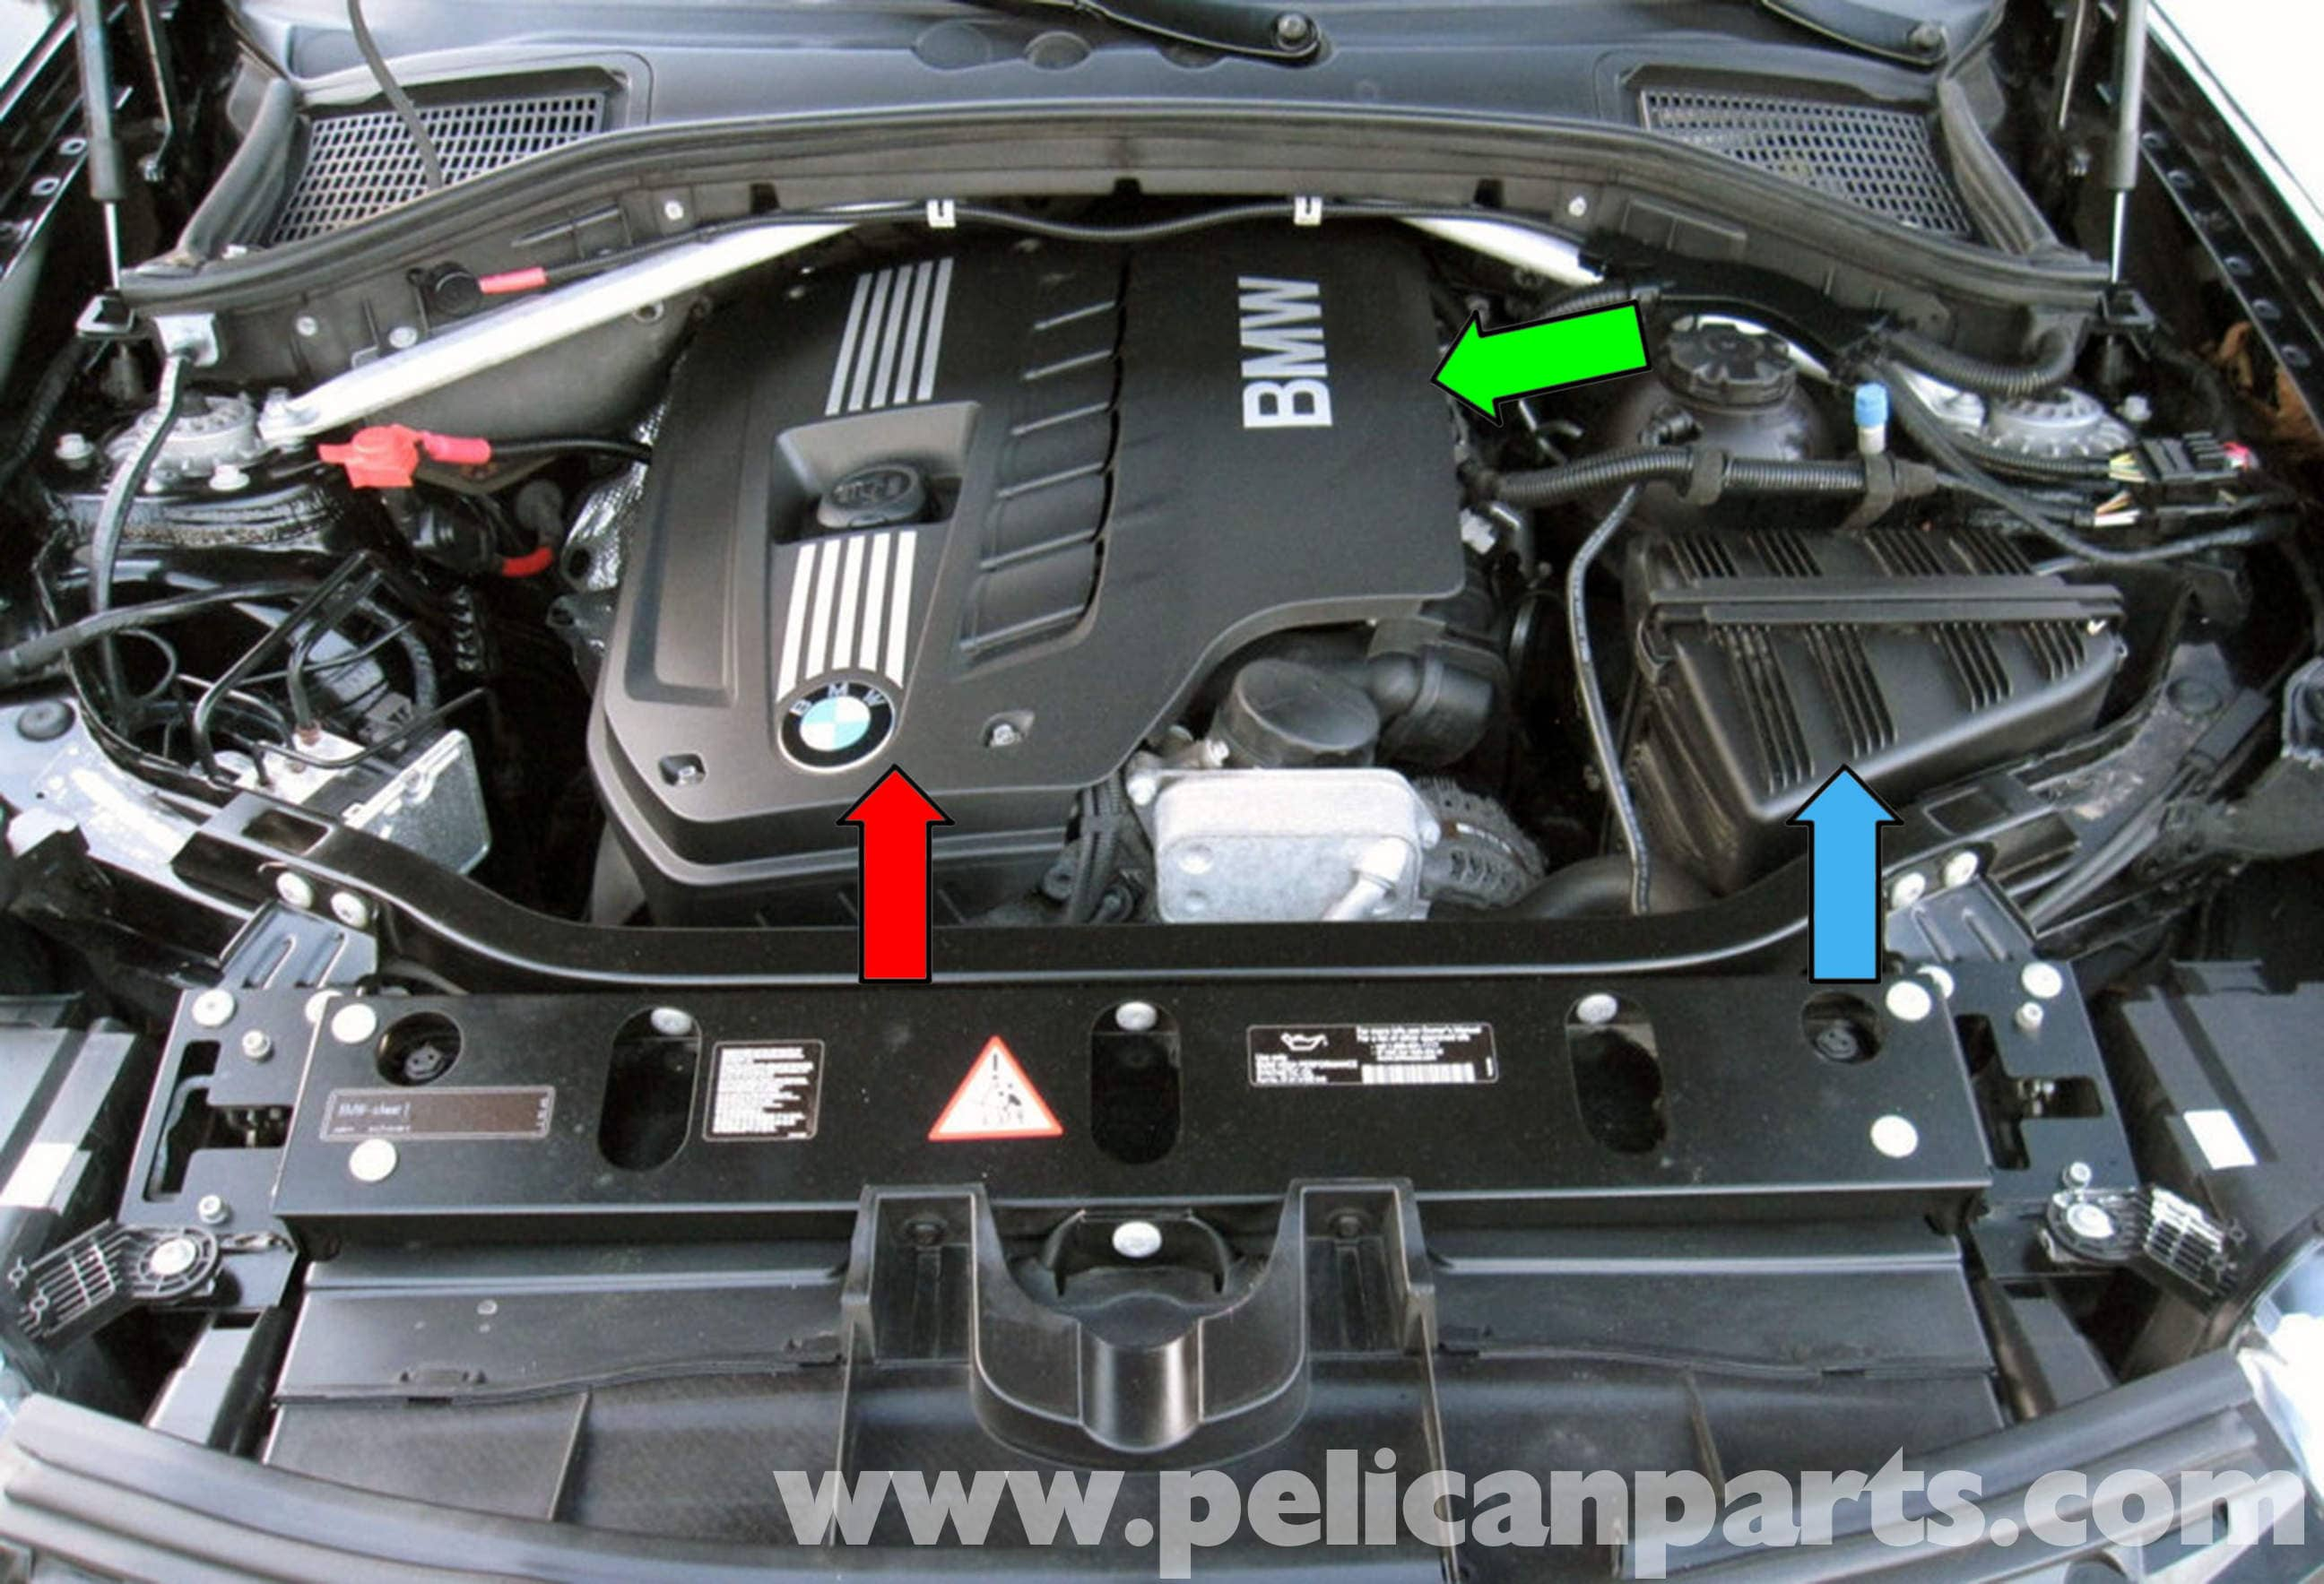 Pelican Technical Article - Bmw-x3